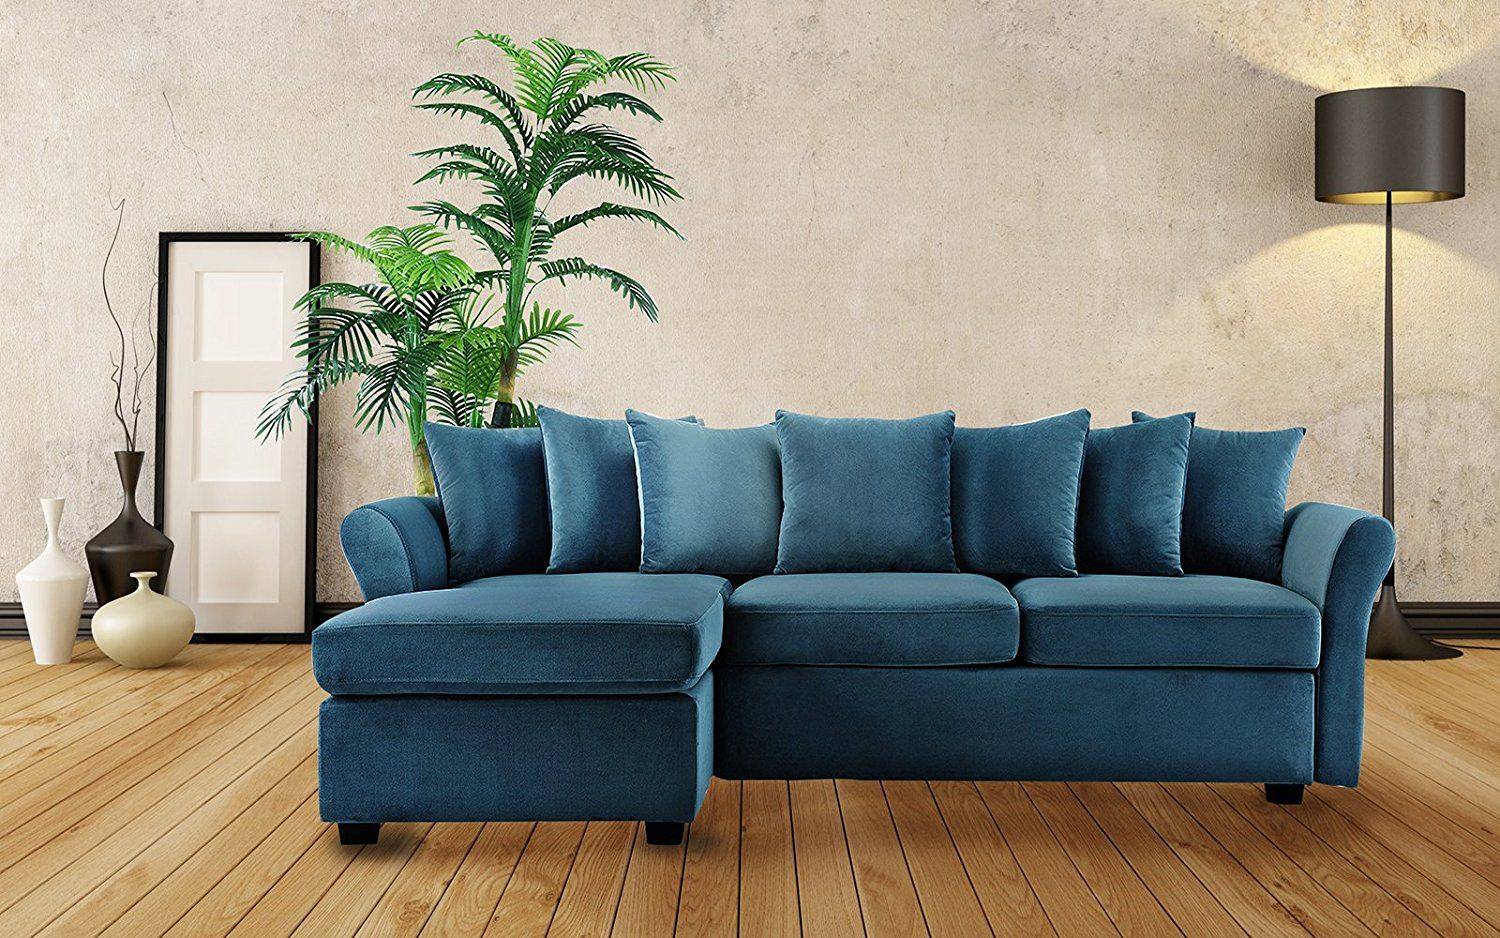 500 Modern Large Velvet Sectional Sofa L Shape Couch With Extra Wide Chaise Lounge Blue Small Couch With Chaise Velvet Sectional Couch With Chaise